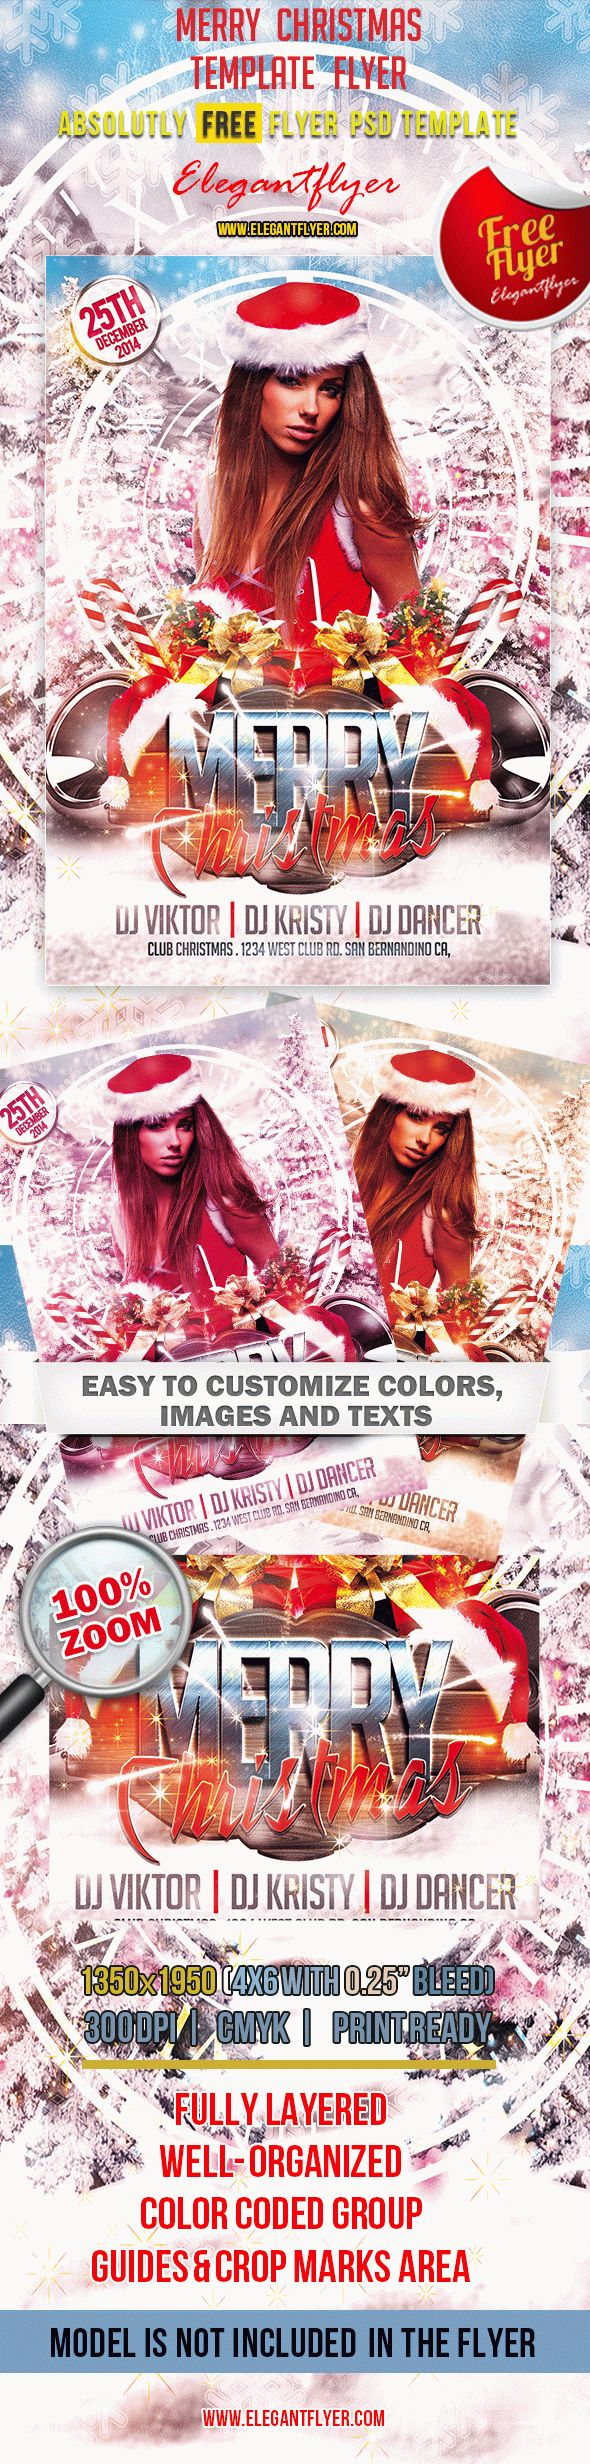 merry christmas club and party flyer psd template by merry christmas club and party flyer psd template